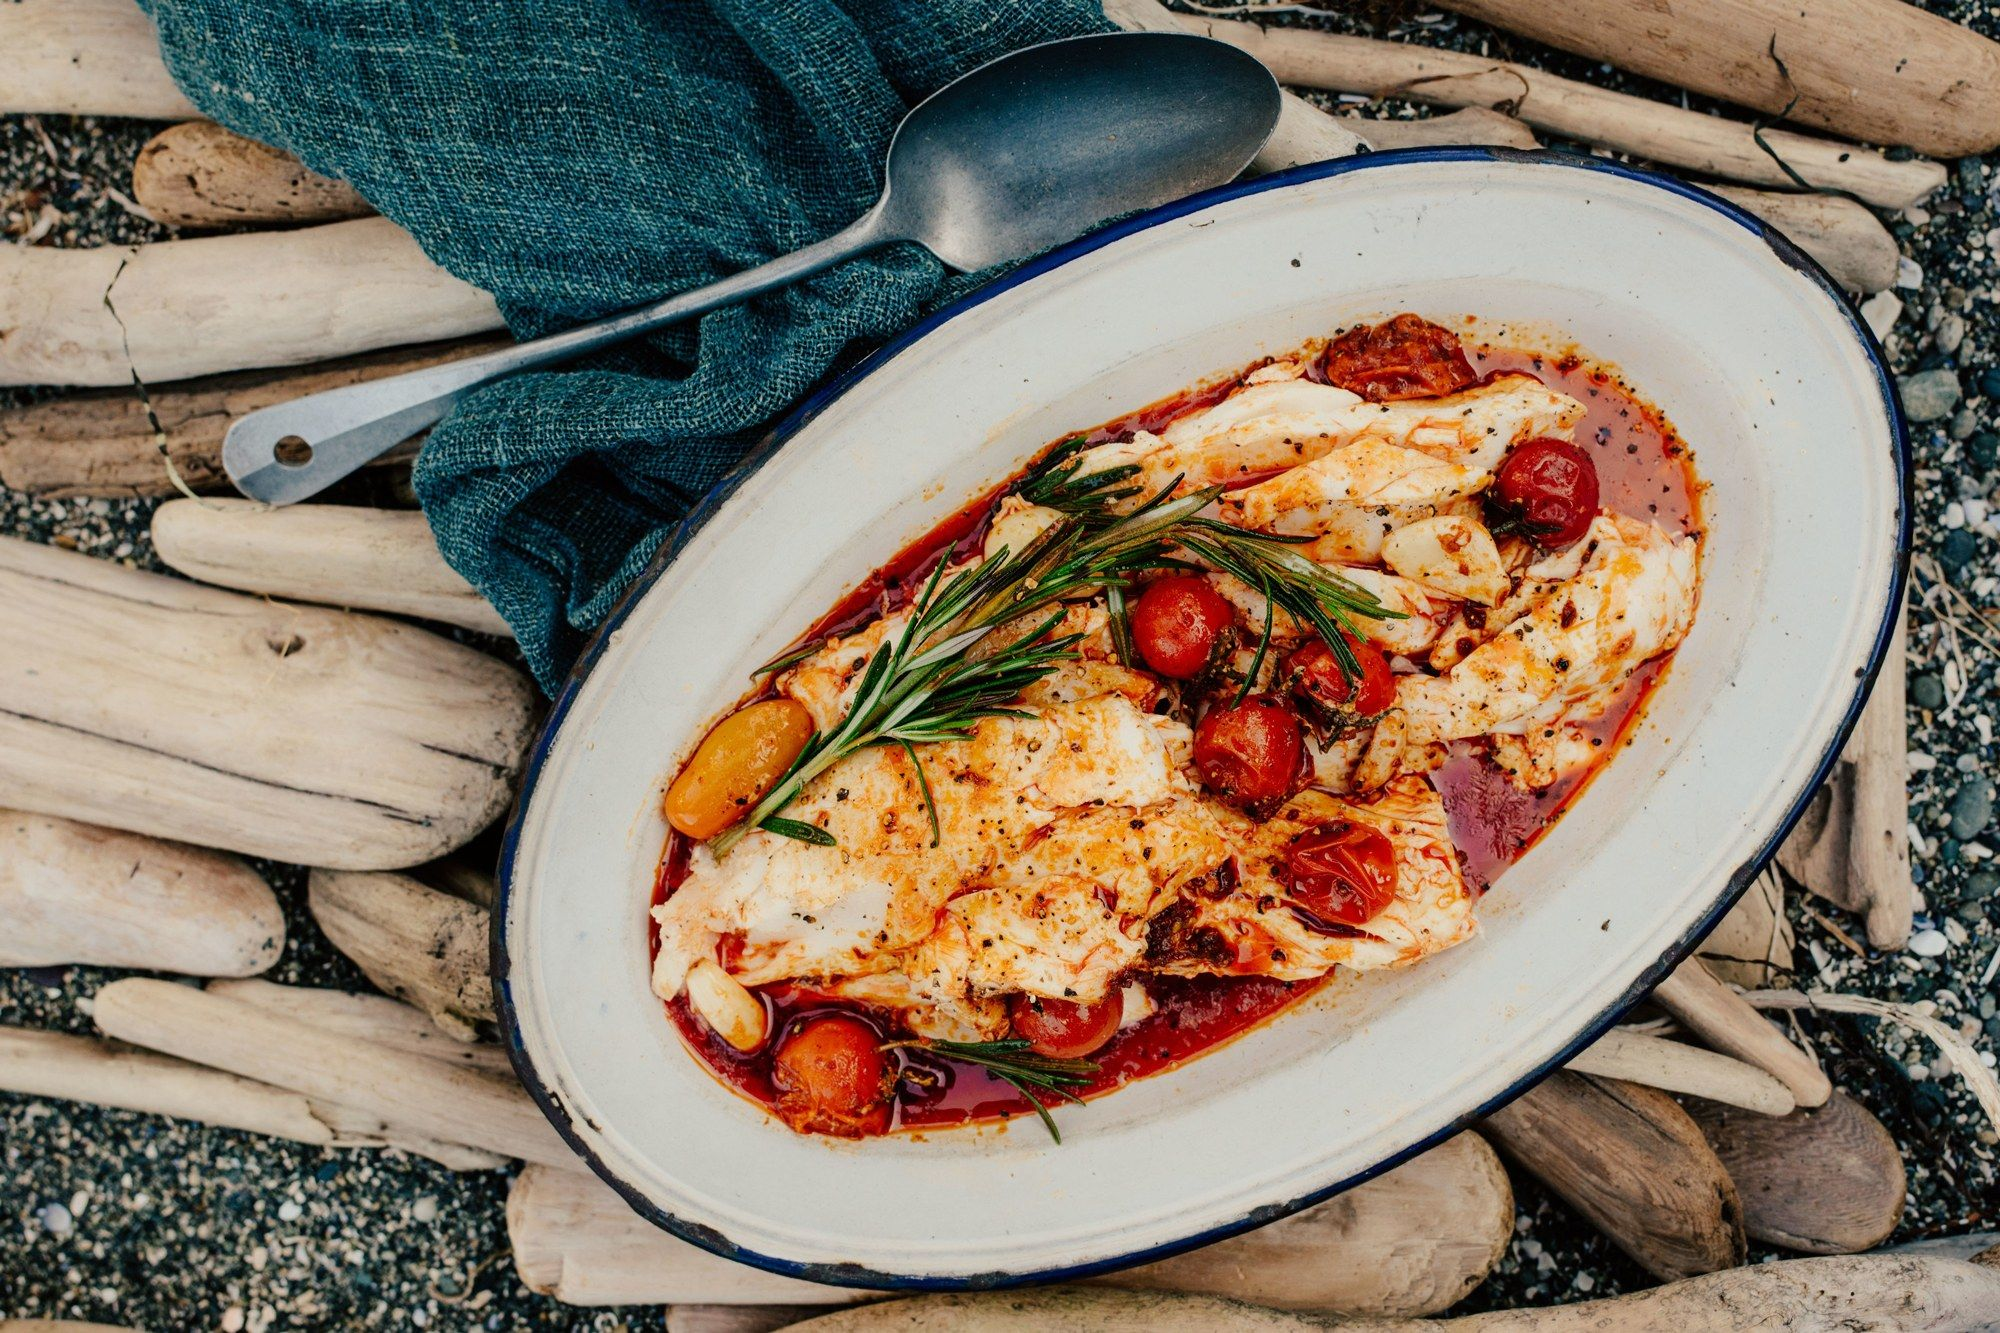 Halibut With Spicy Sausage Tomatoes And Rosemary Recipe Halibut Recipes Best Halibut Recipes Grilled Halibut